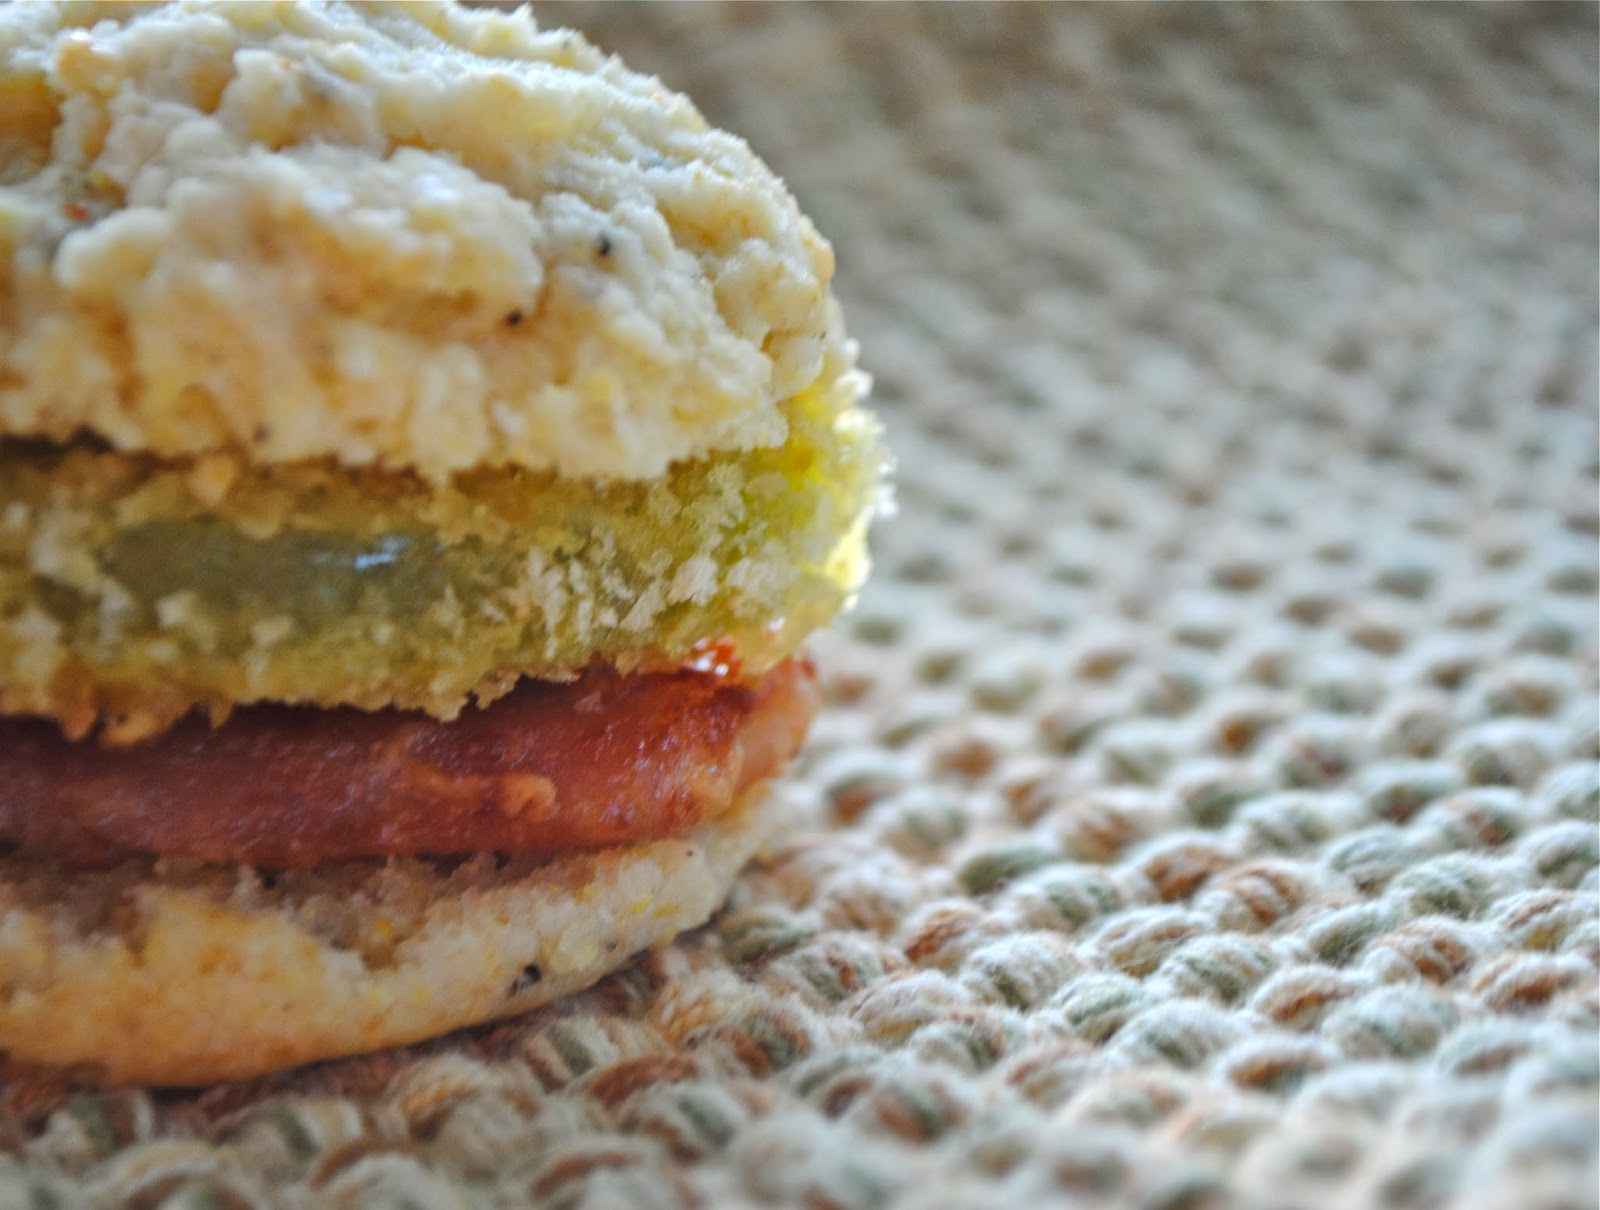 ... of the cornmeal biscuit with country ham and fried green tomato